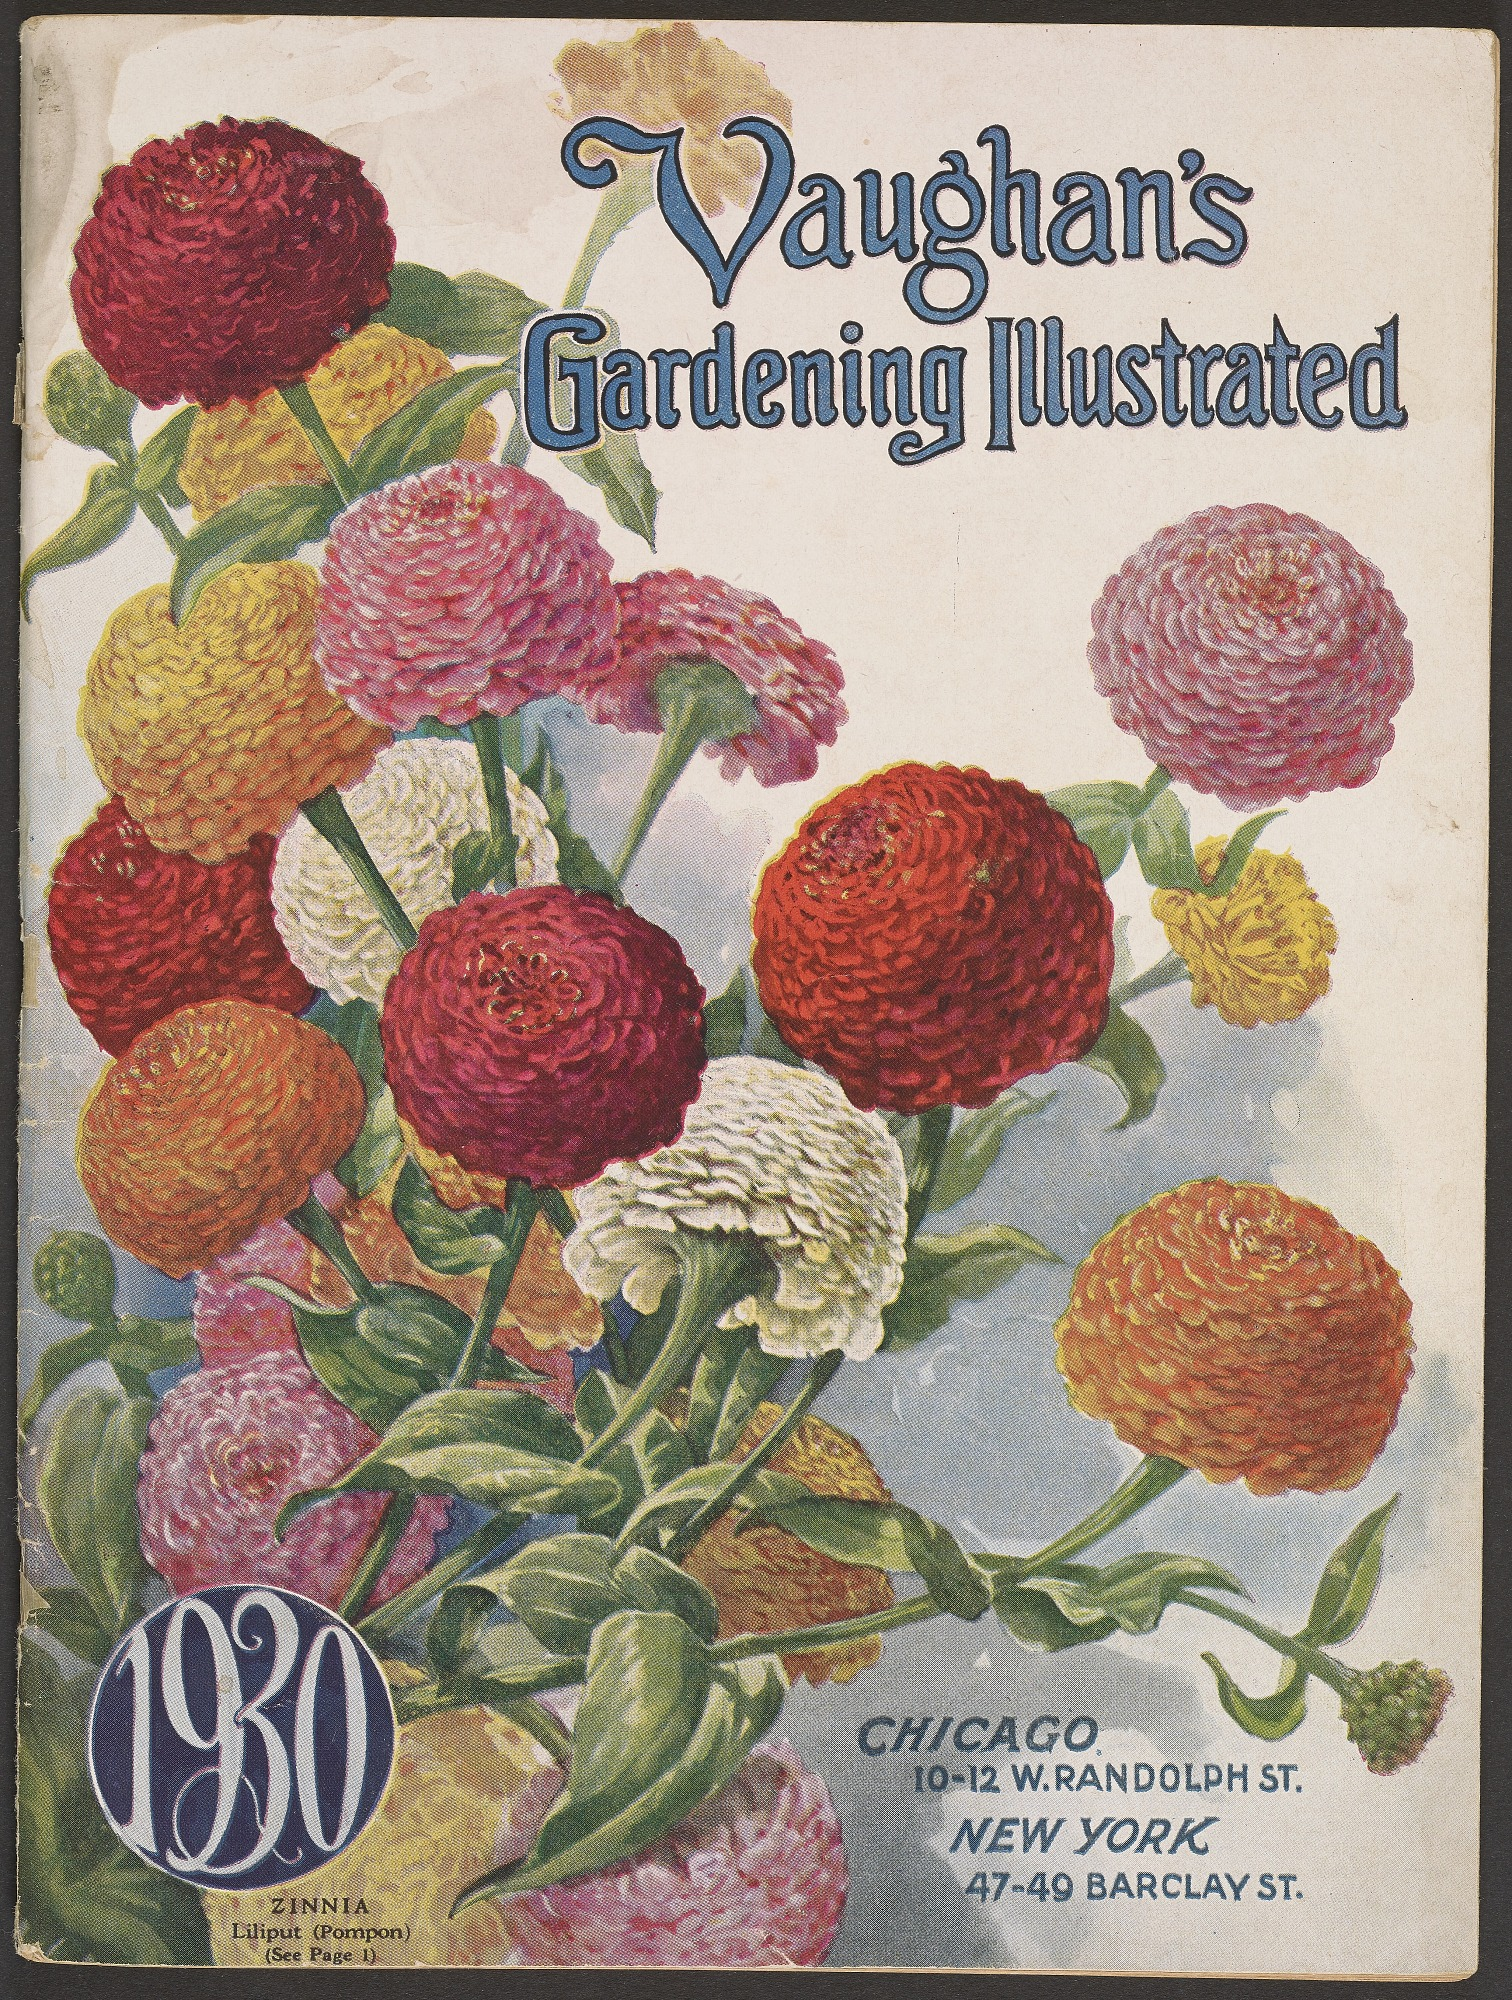 Vaughan's Gardening Illustrated, 1930